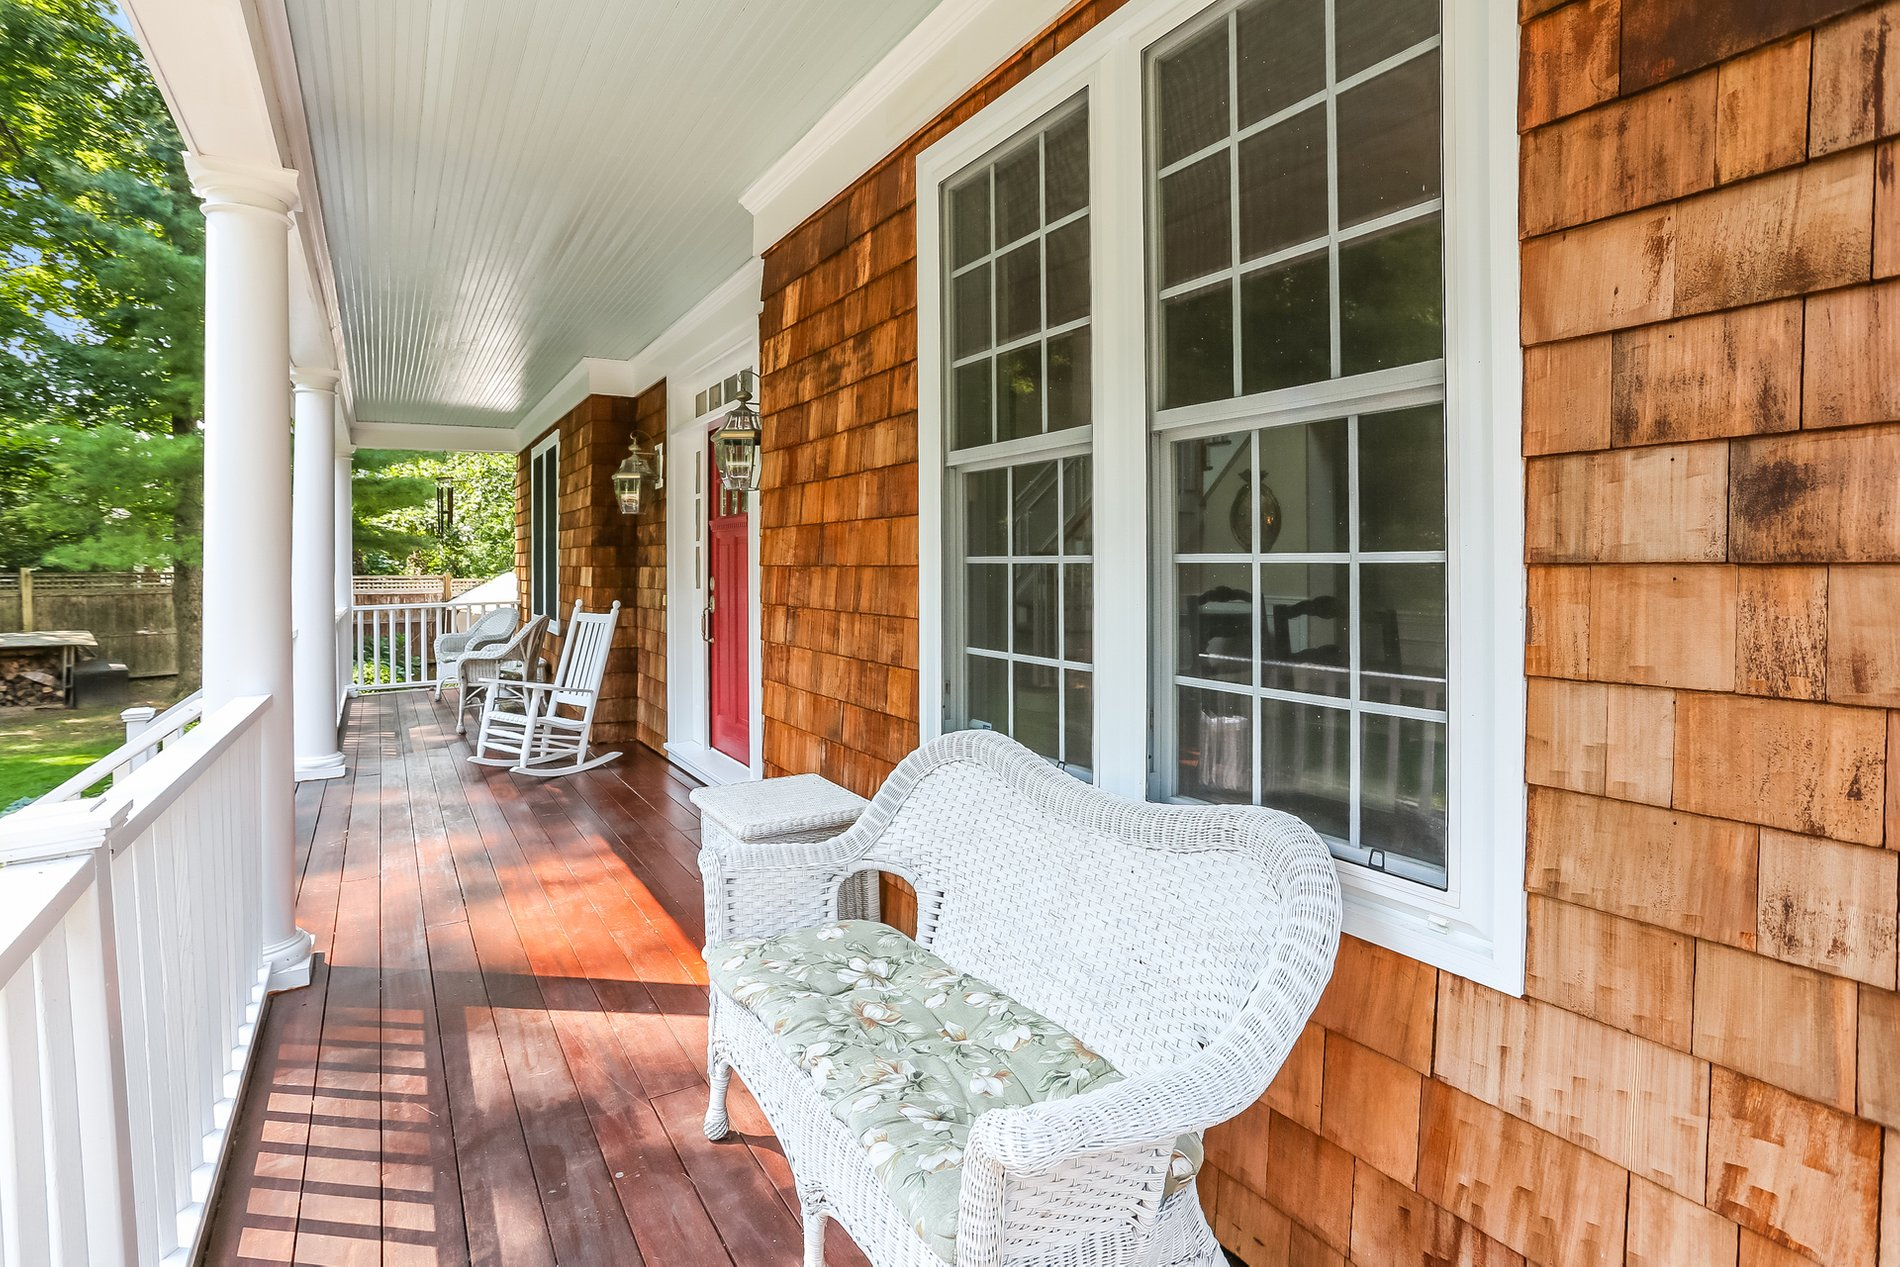 Real wood front porch floor with a light brown natural stain, white columns and cedar shake siding.